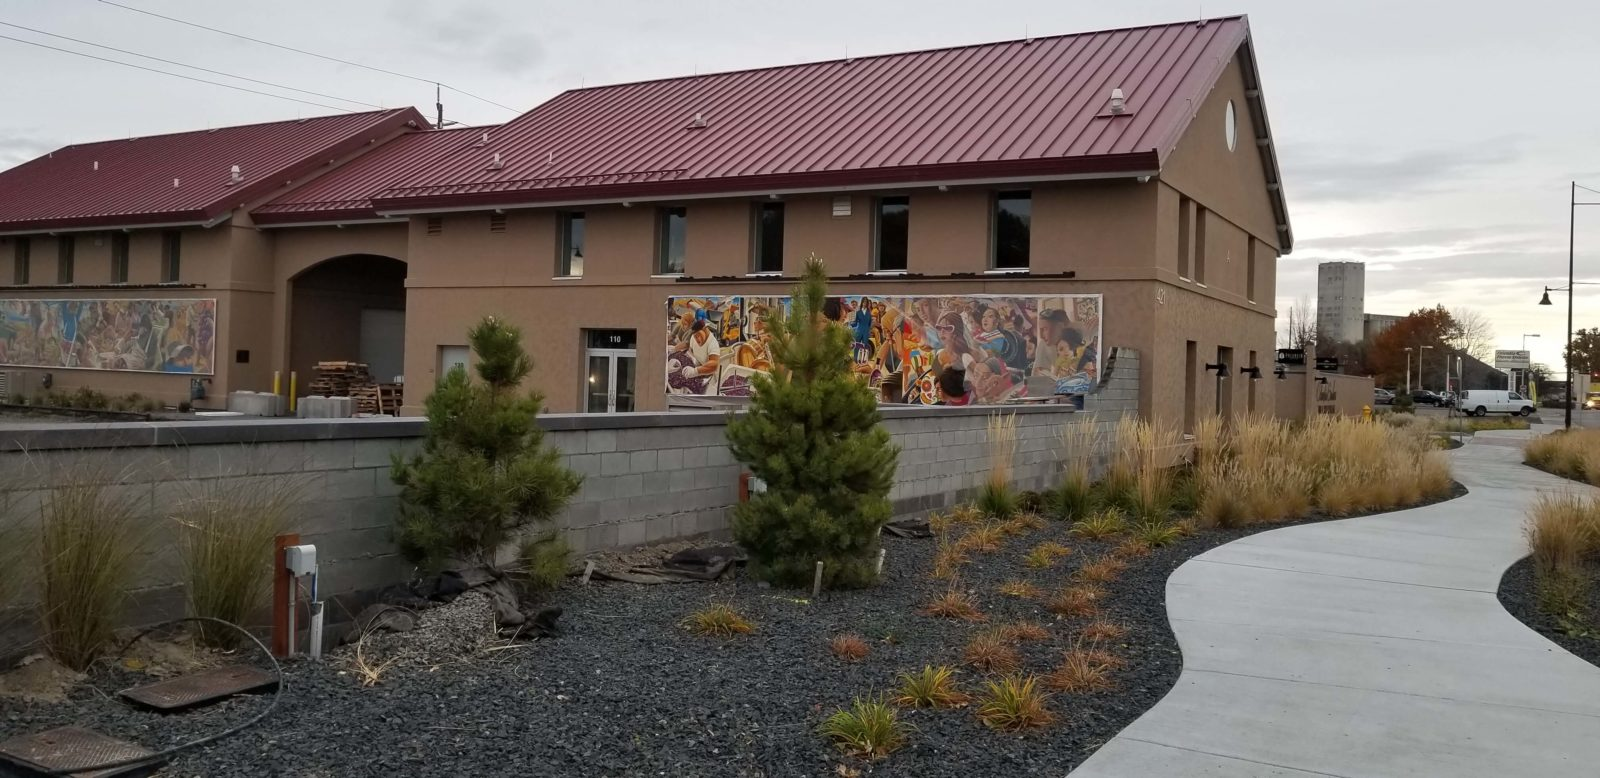 Two Columbia Gardens buildings, sidewalk, landscaping and murals.